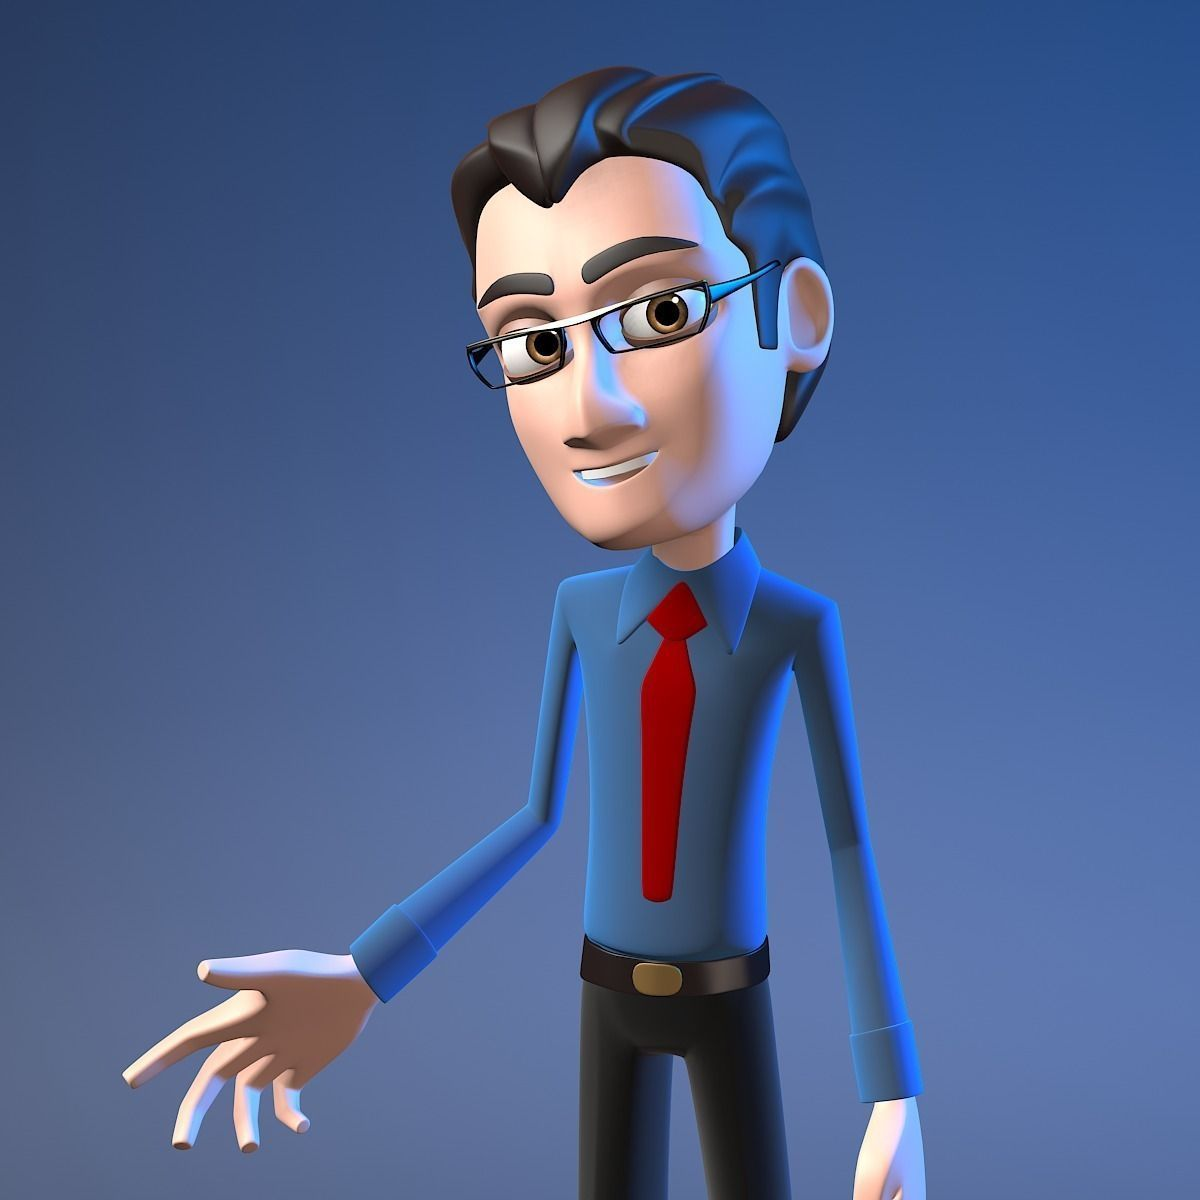 2 Cartoon Rigged Office Characters 3d Model Rigged Max Obj